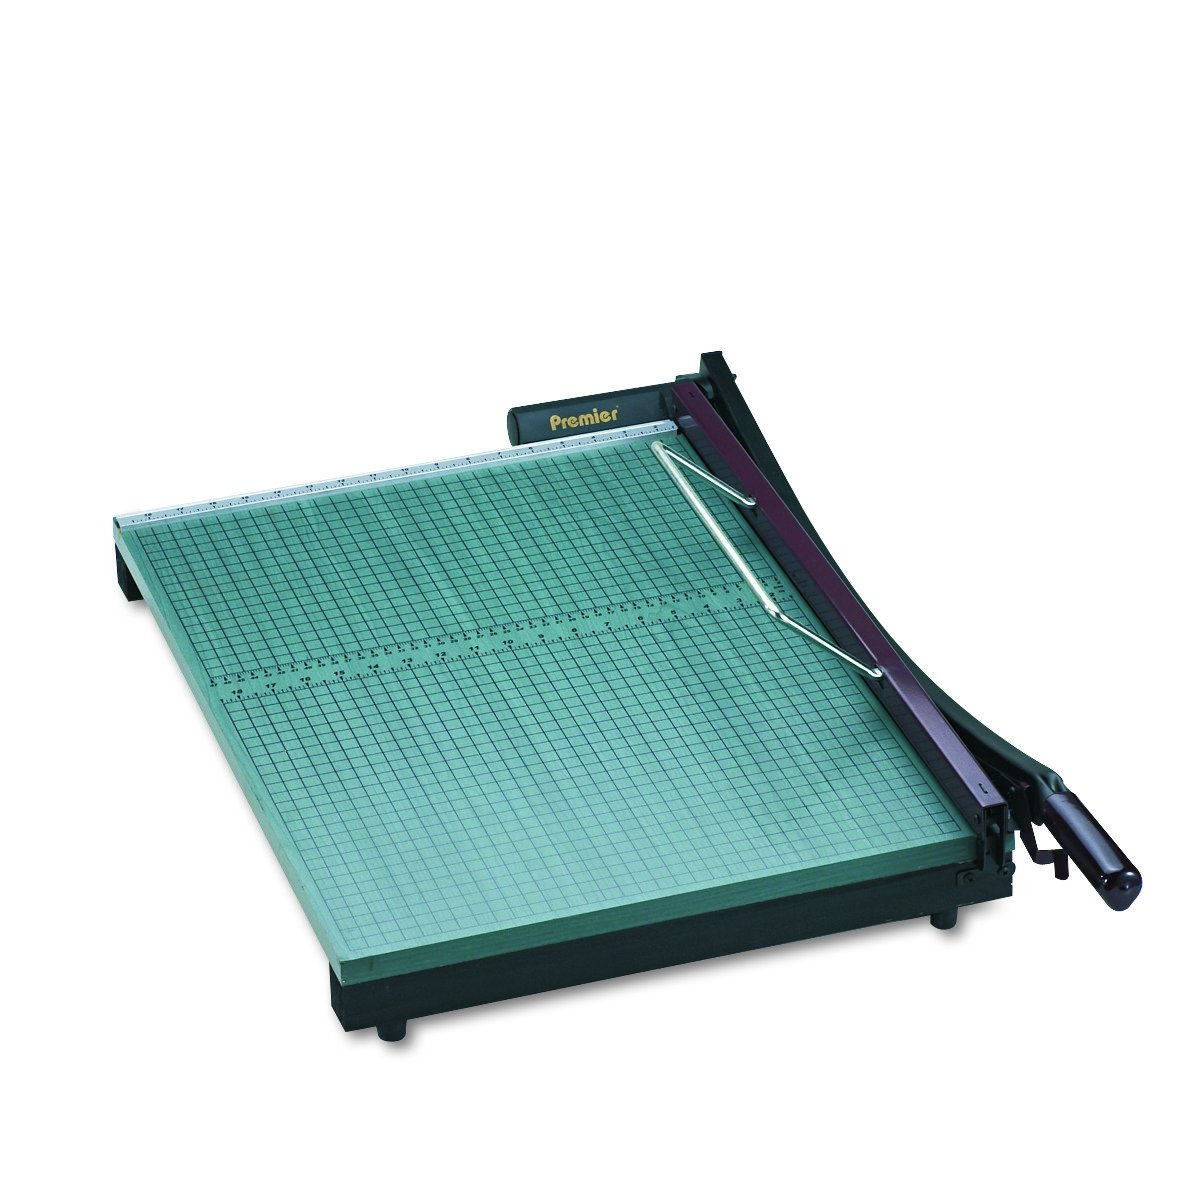 Premier 724 StakCut Paper Trimmer, 30 Sheets, Wood Base, 19'' x 24-7/8''